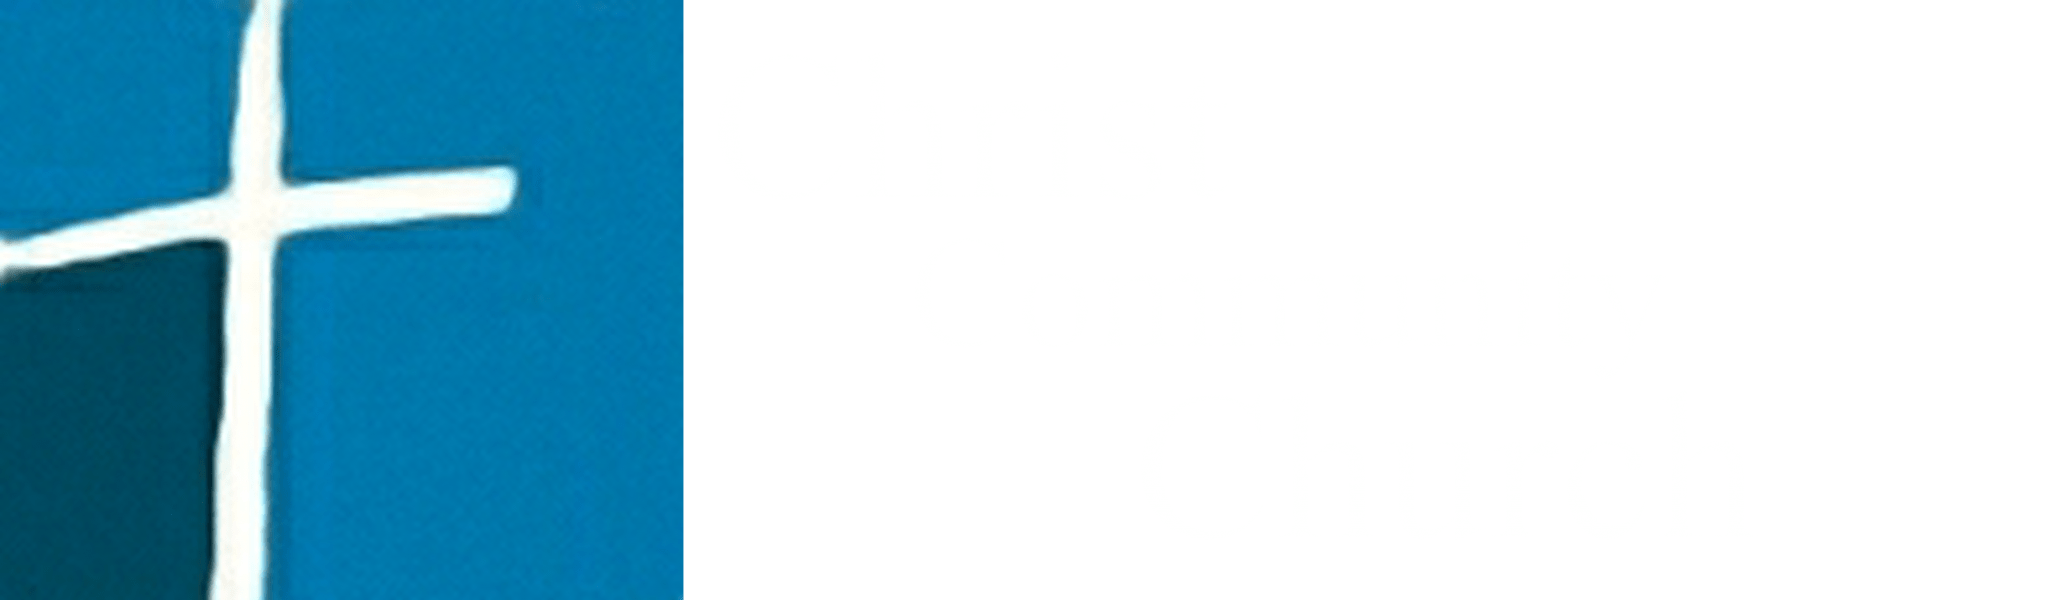 Christ Community Church Ocala